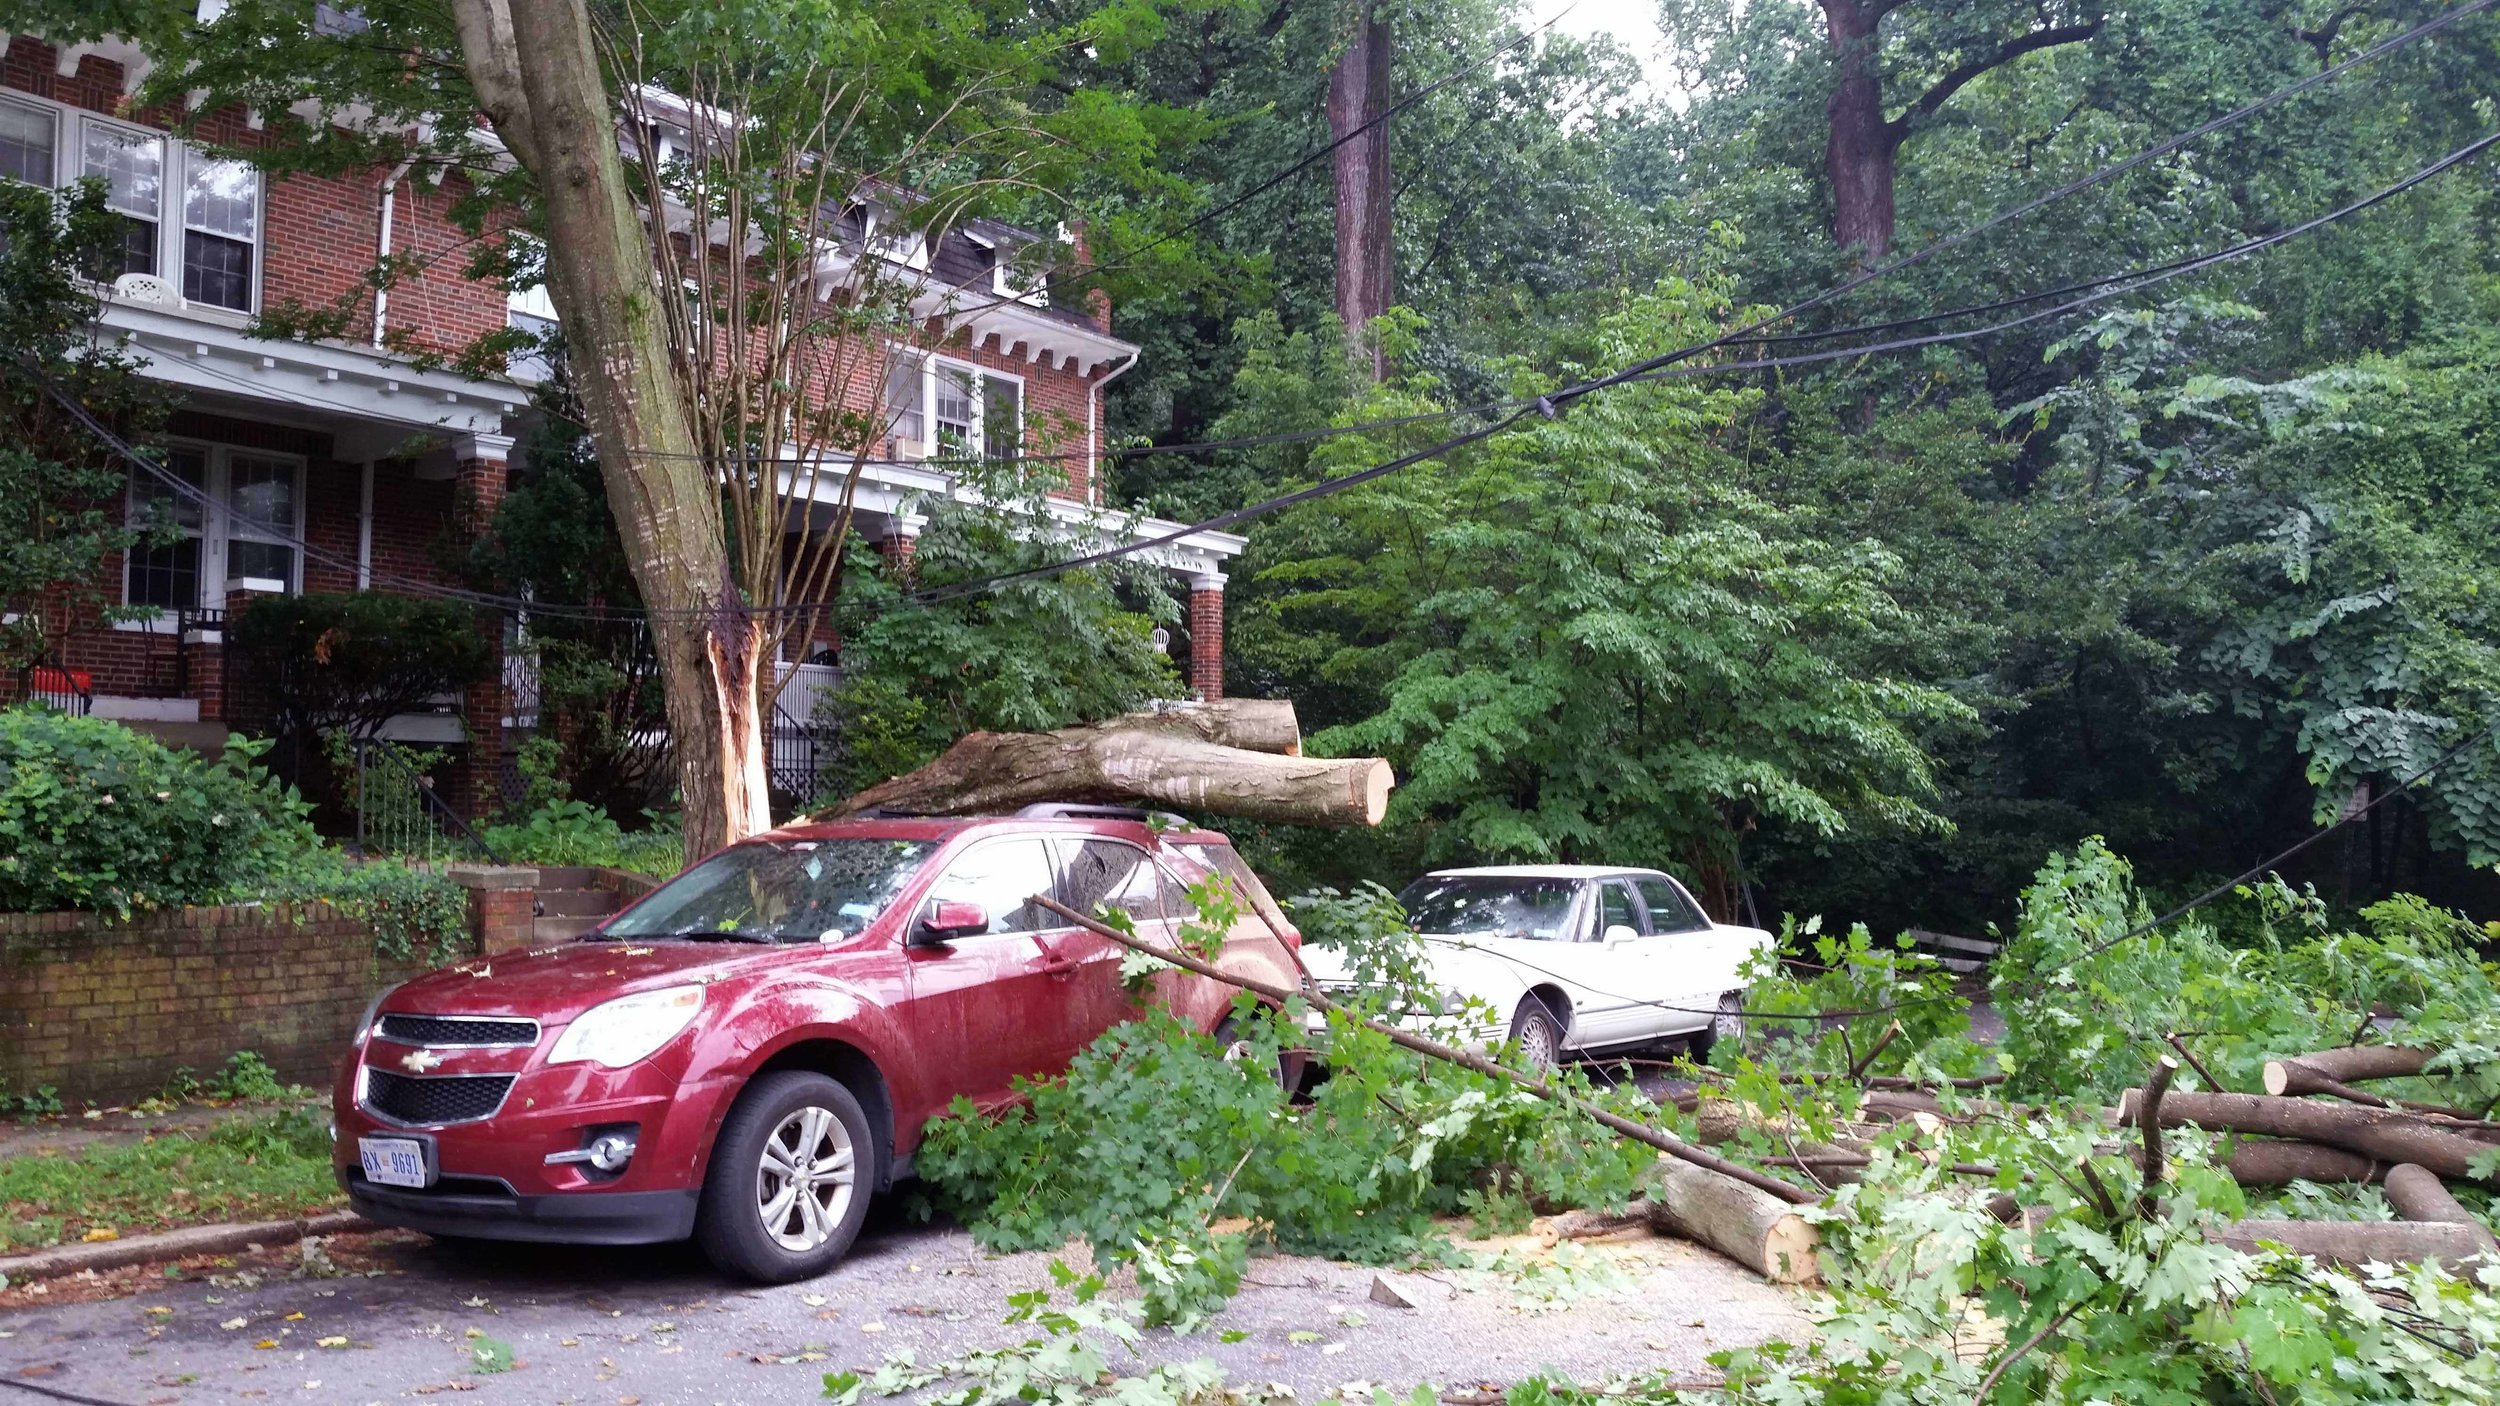 That same night, 38th Street residents lost power due to another fallen tree. Pepco restored the power later that evening.